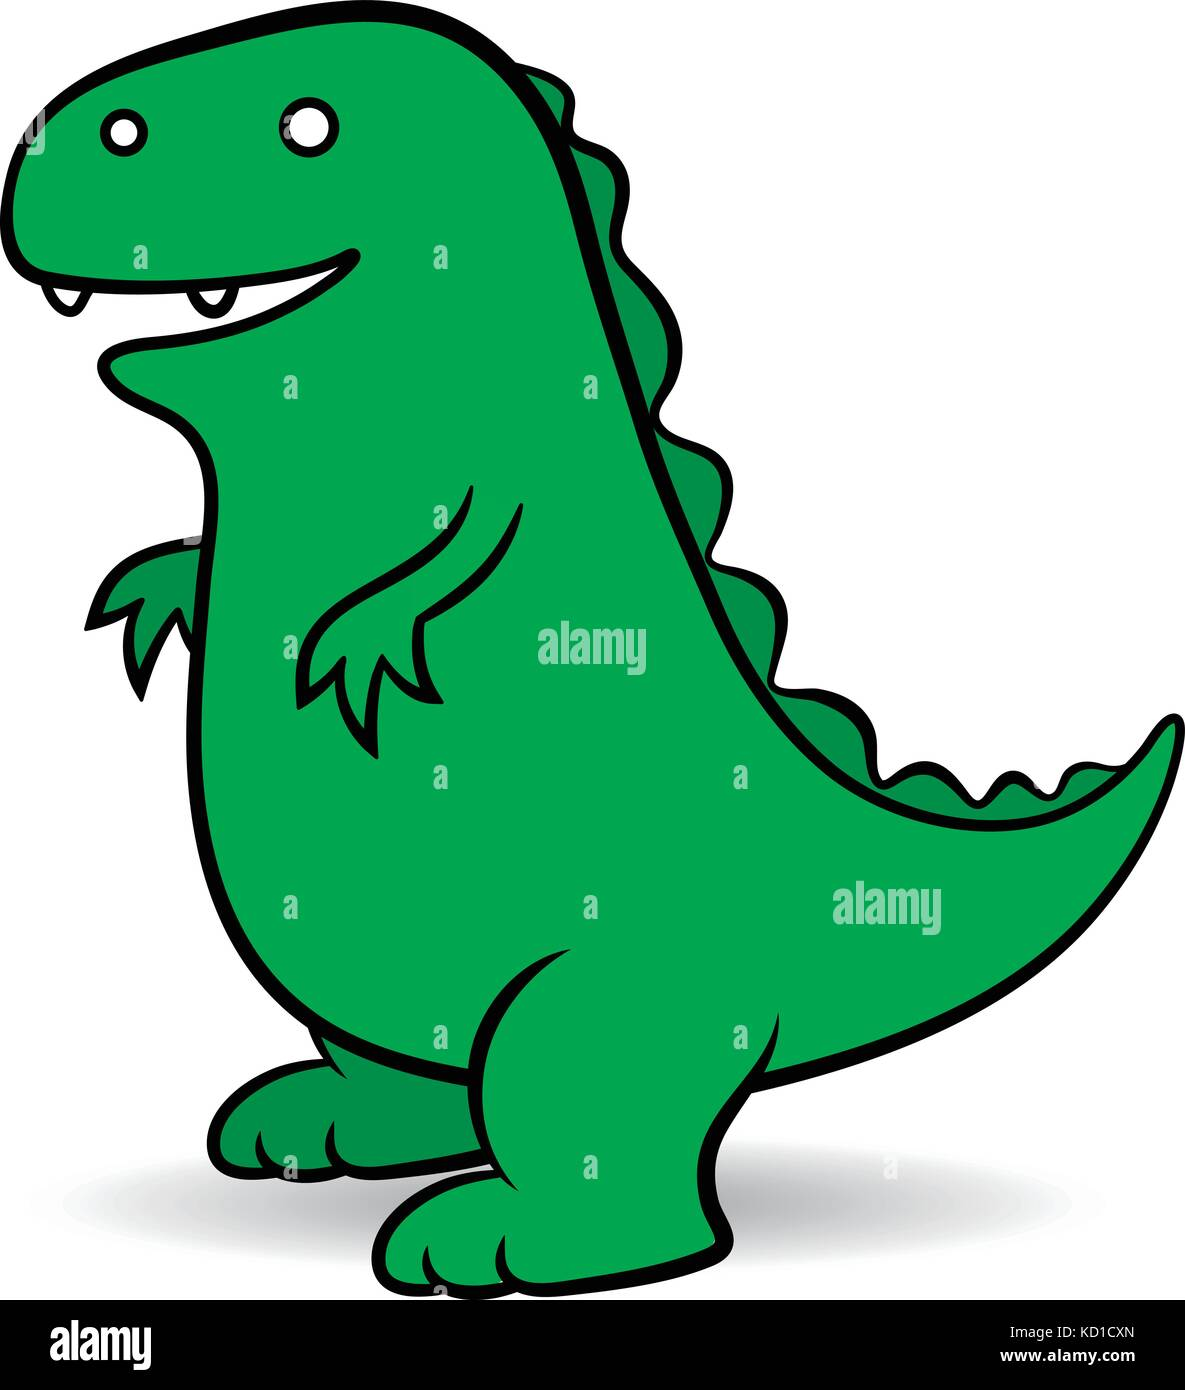 green cartoon a fictional giant godzilla monster portrayed as an rh alamy com Godzilla Vector Clip Art Godzilla Vector Clip Art